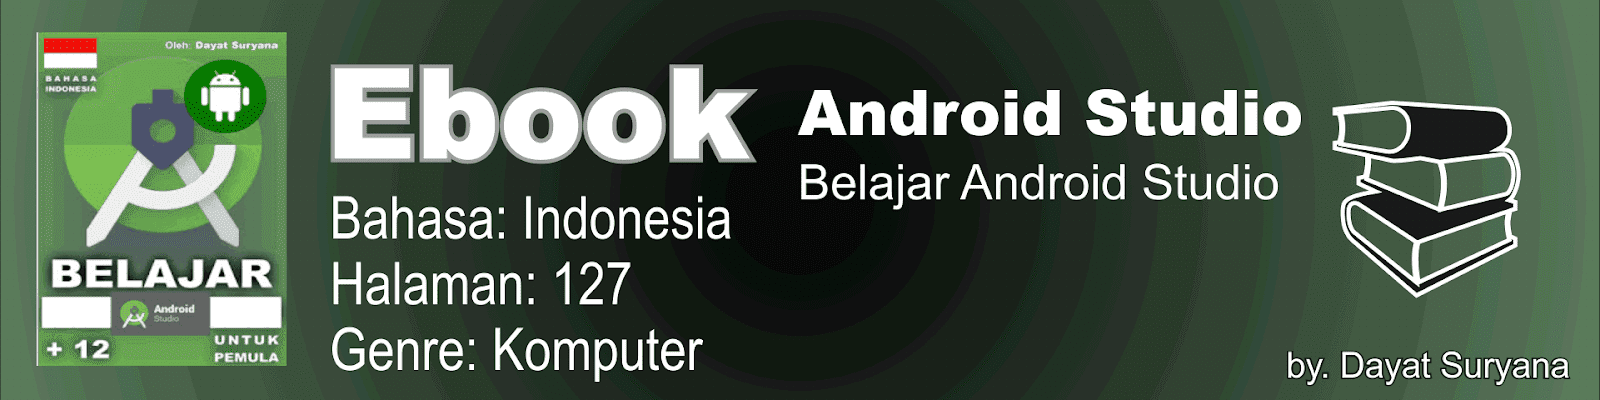 Buku Android Studio